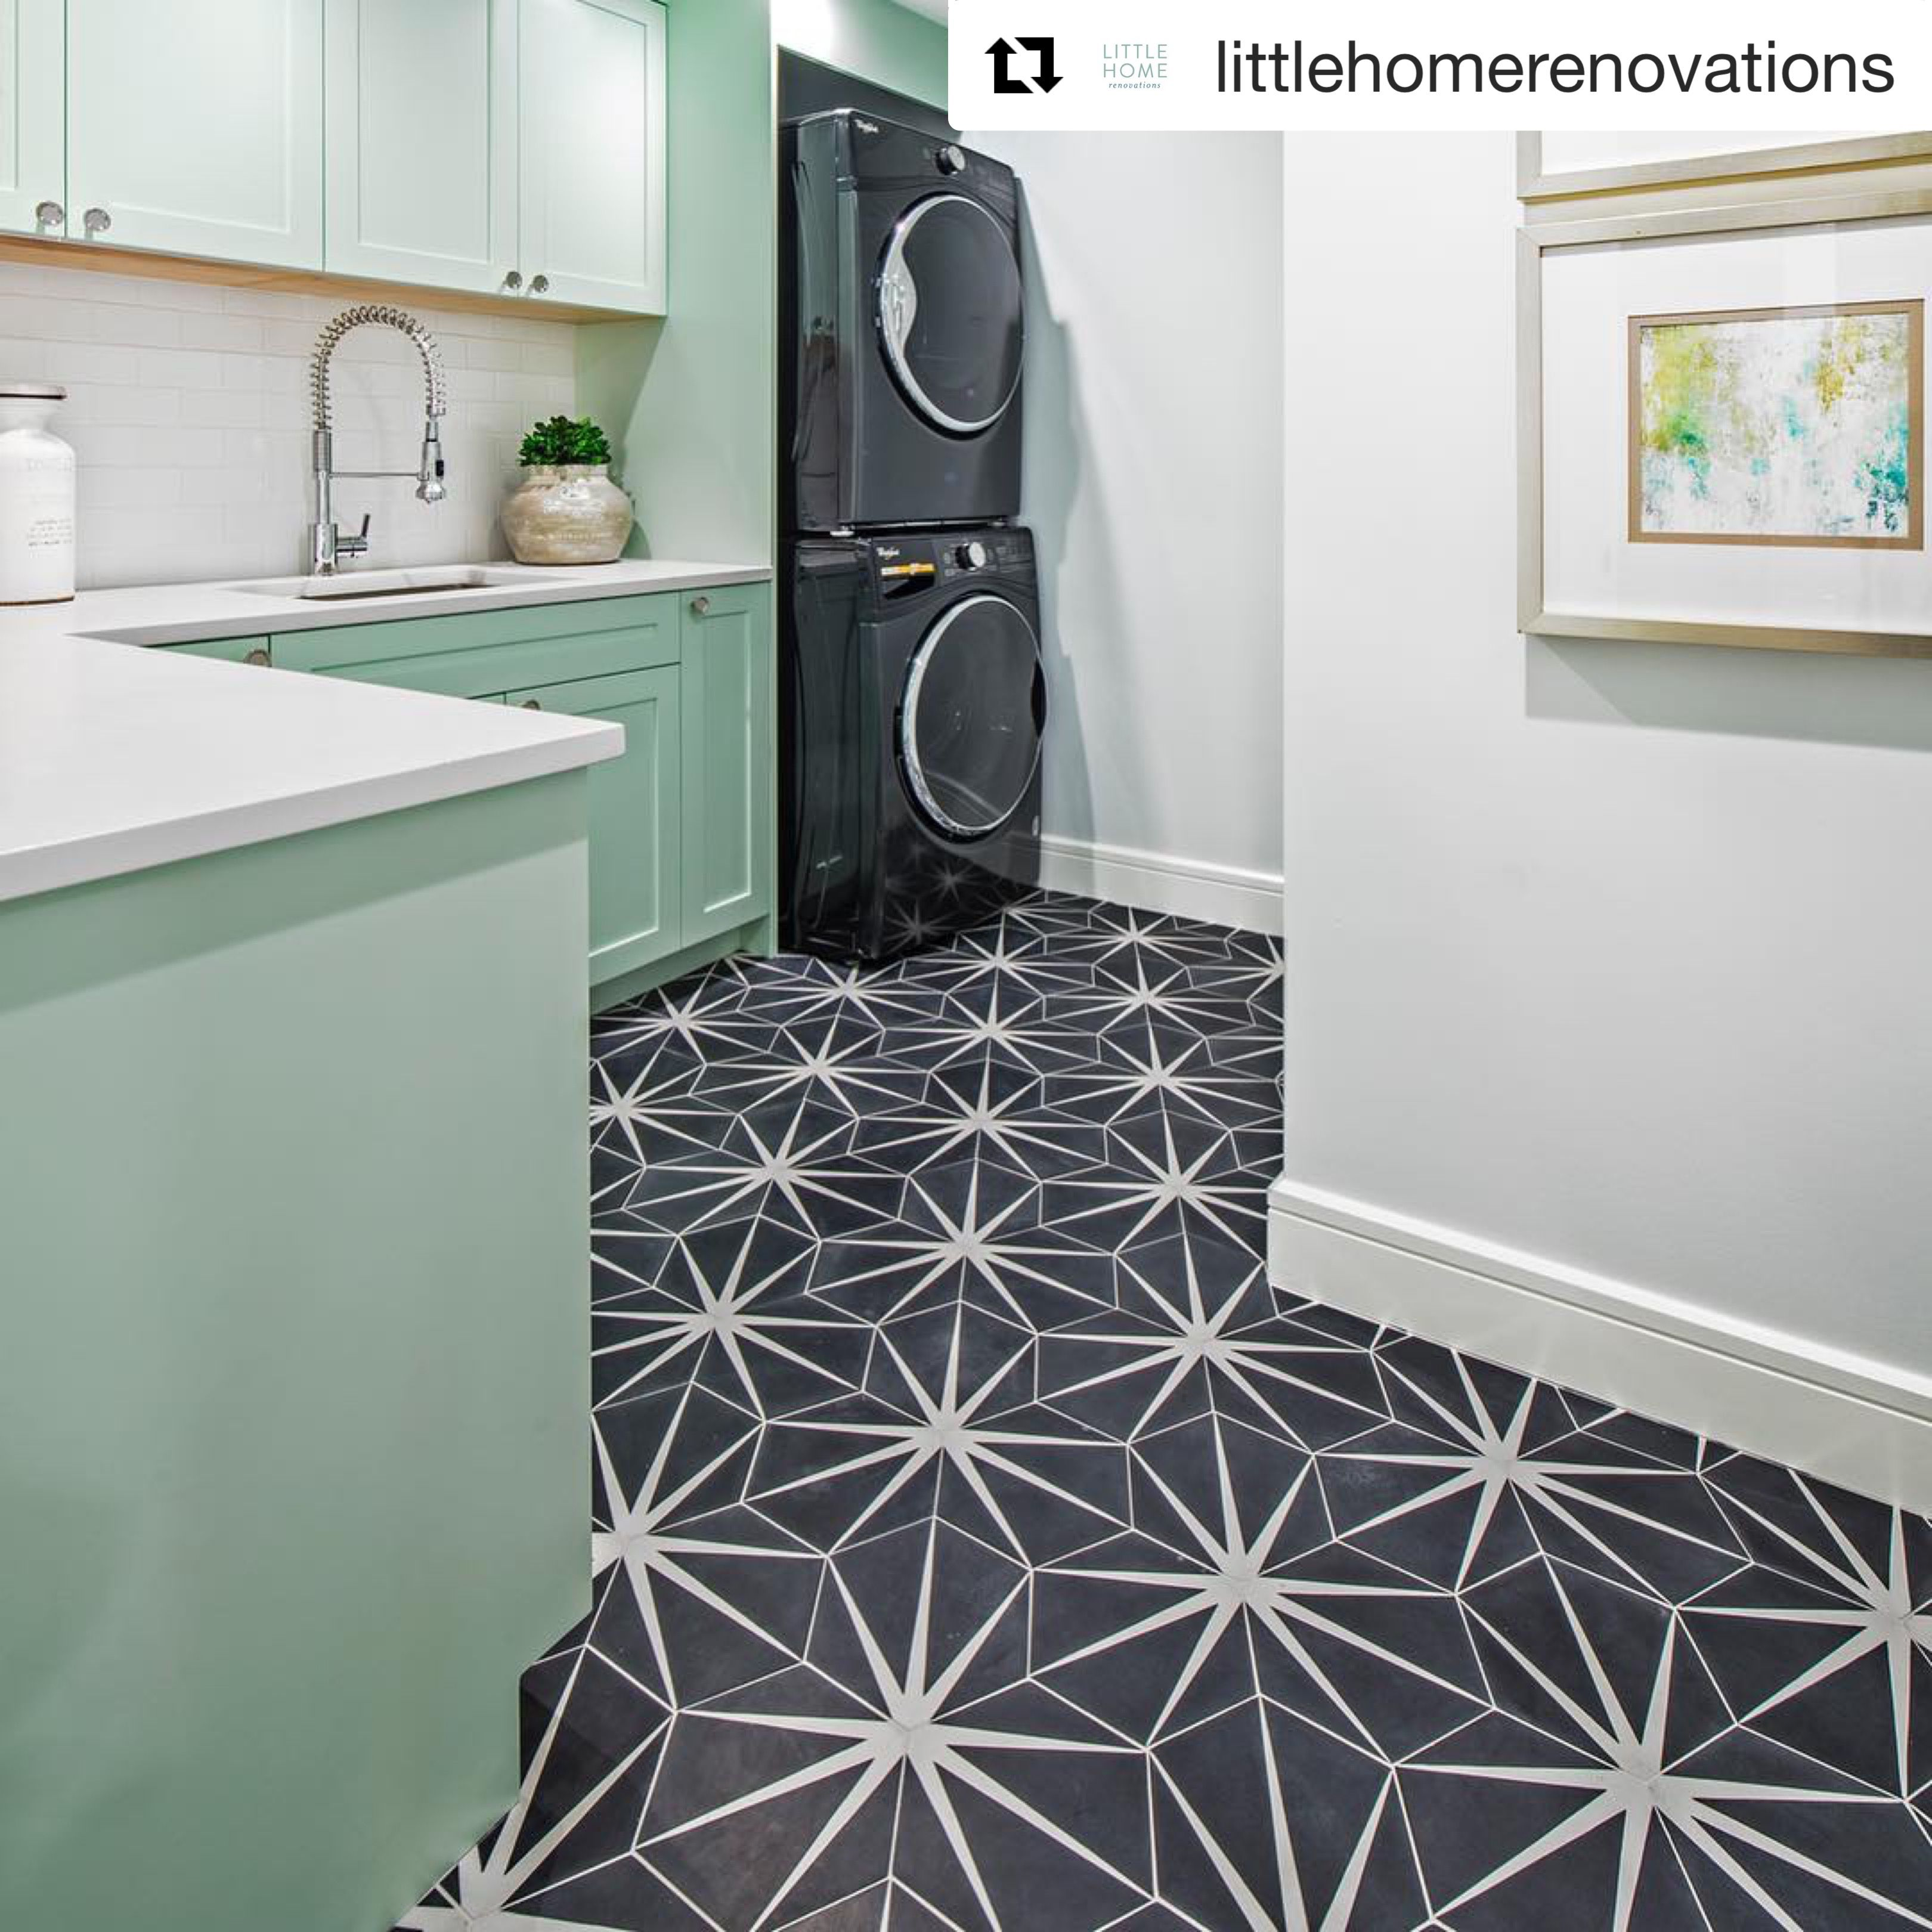 Digging this laundry room by @littlehomerenovations. They